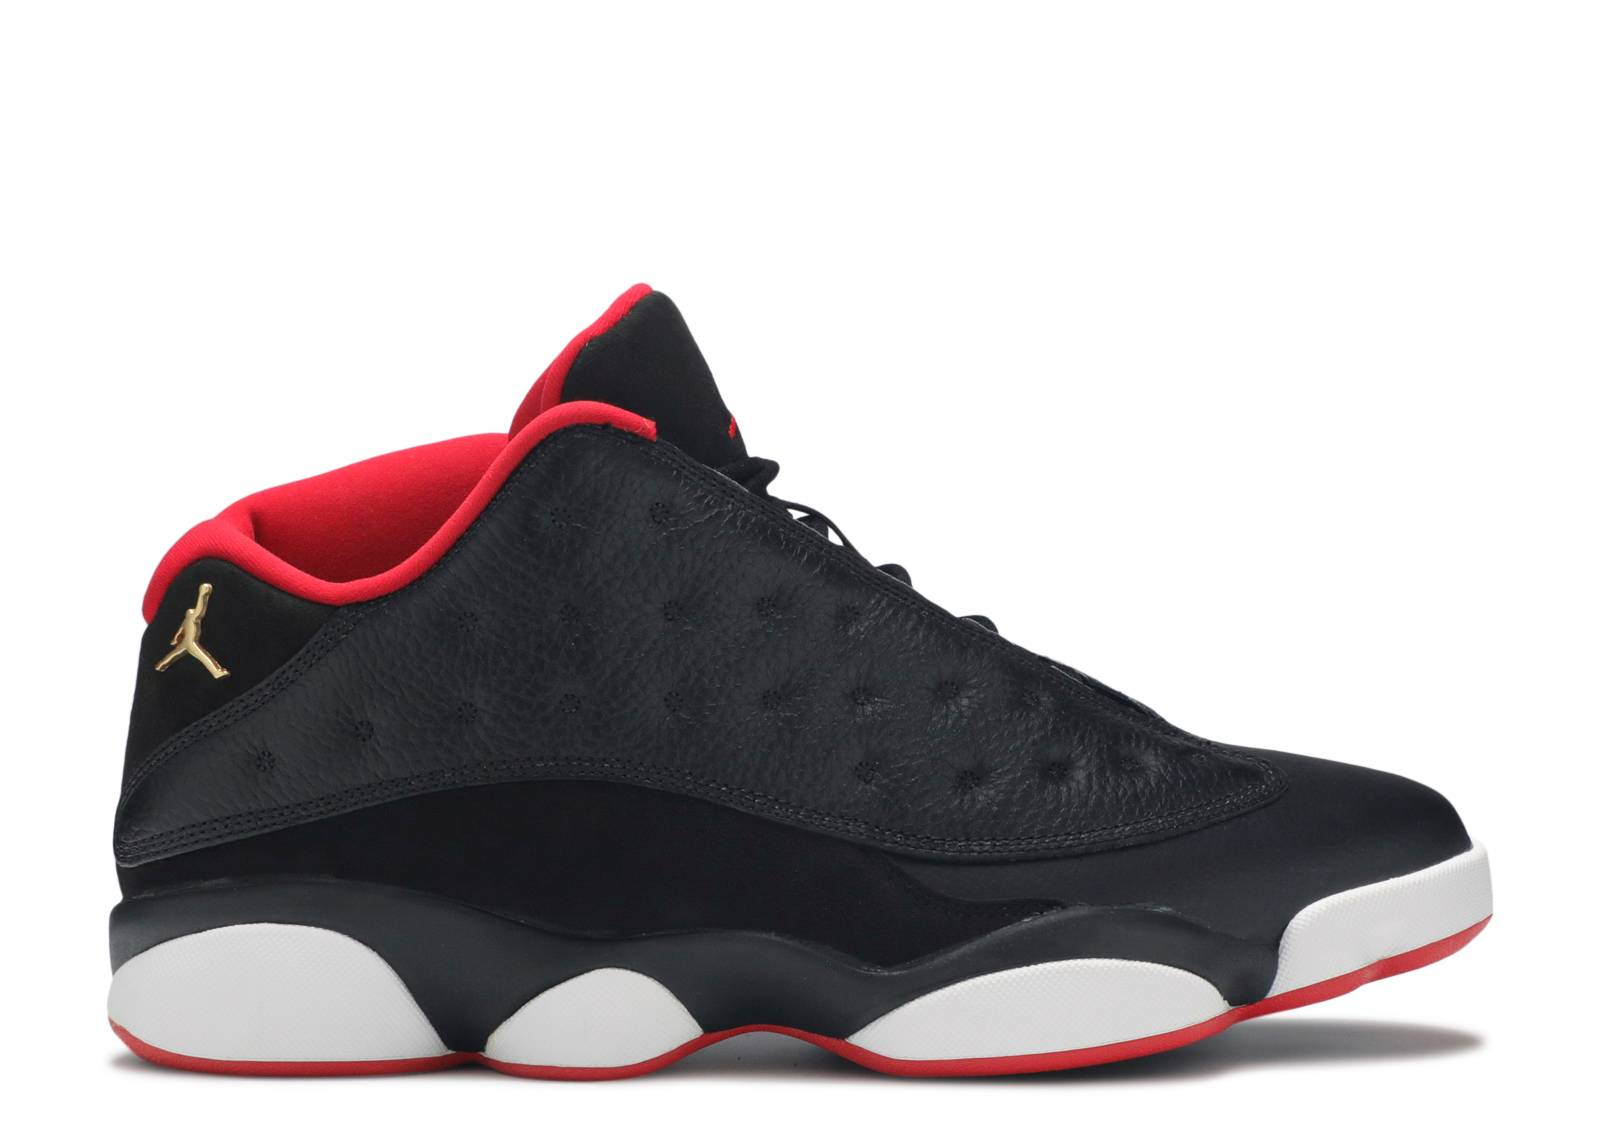 air jordan xiii bred low top